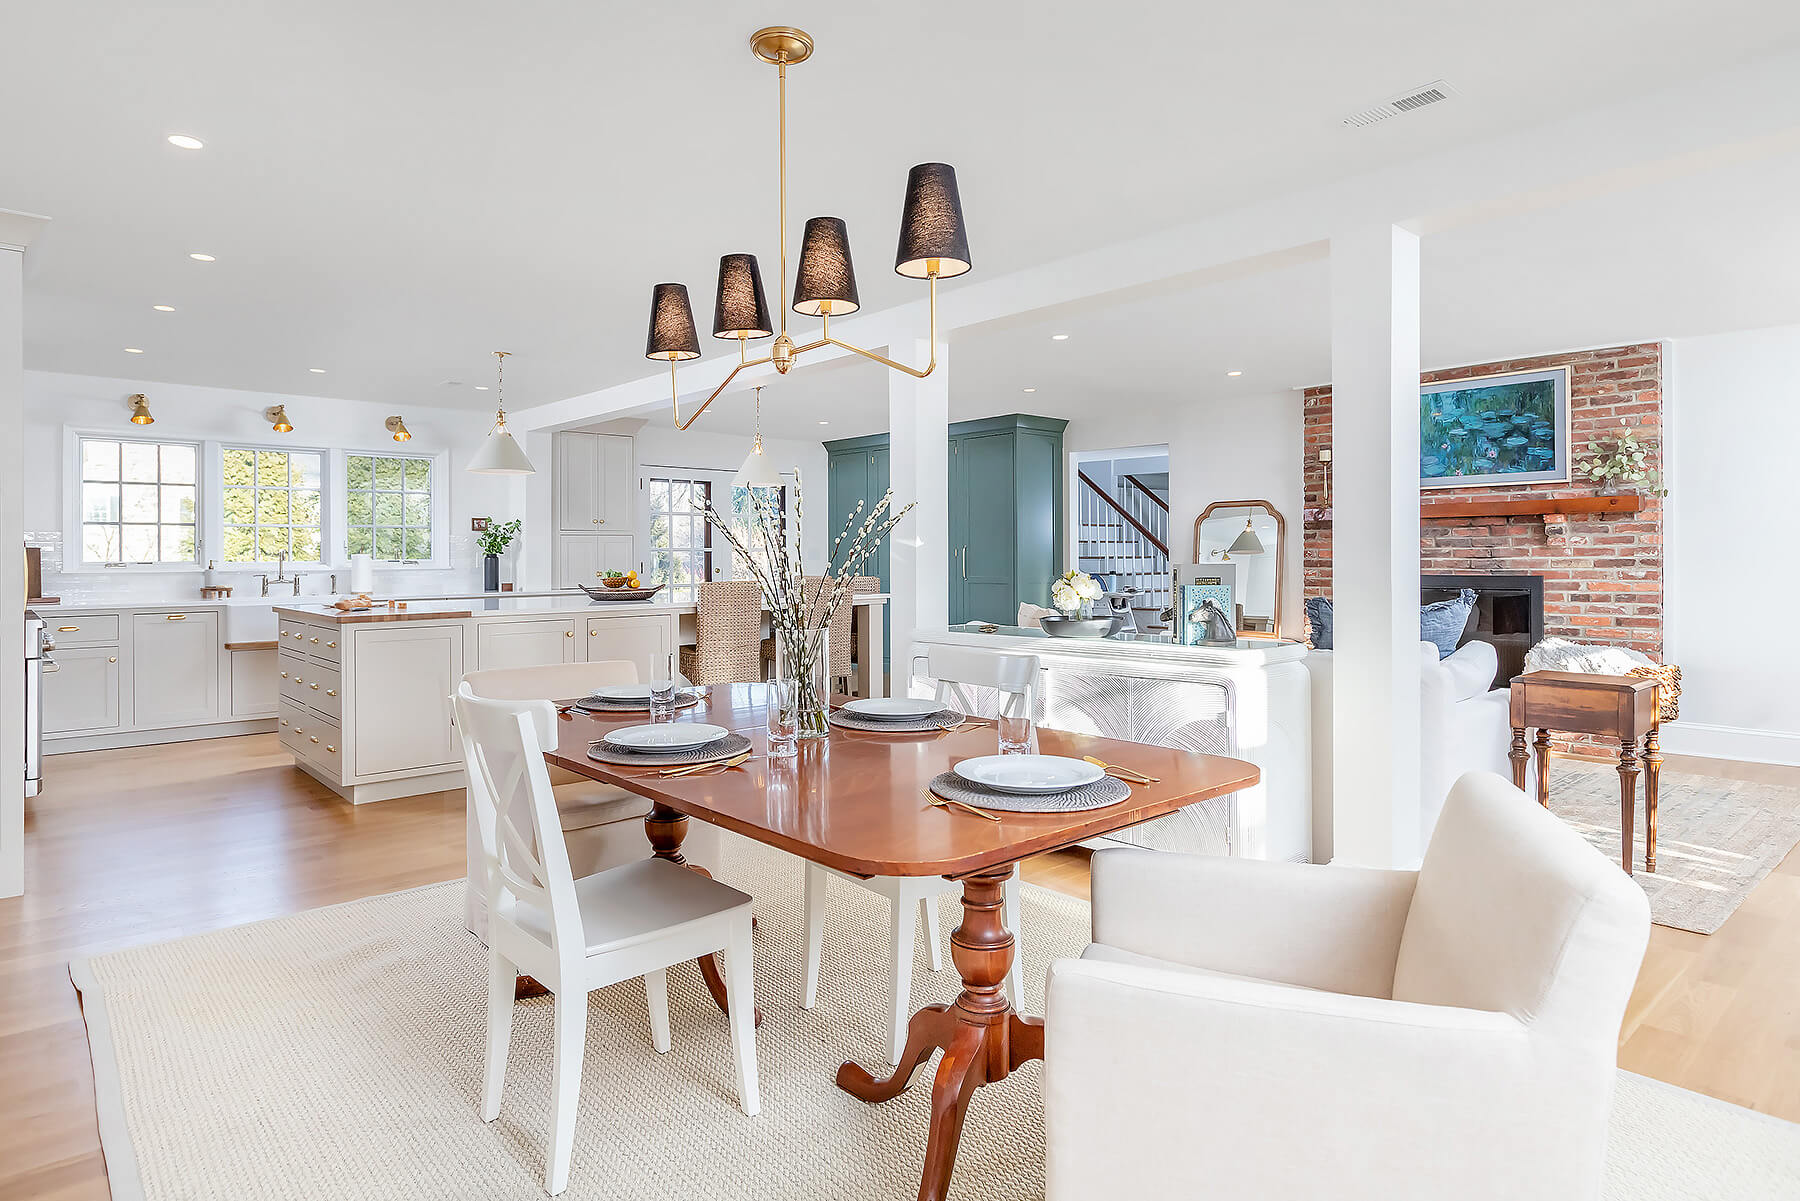 Transitional Kitchen Remodel Project Spotlight by Bellweather Design Build-1